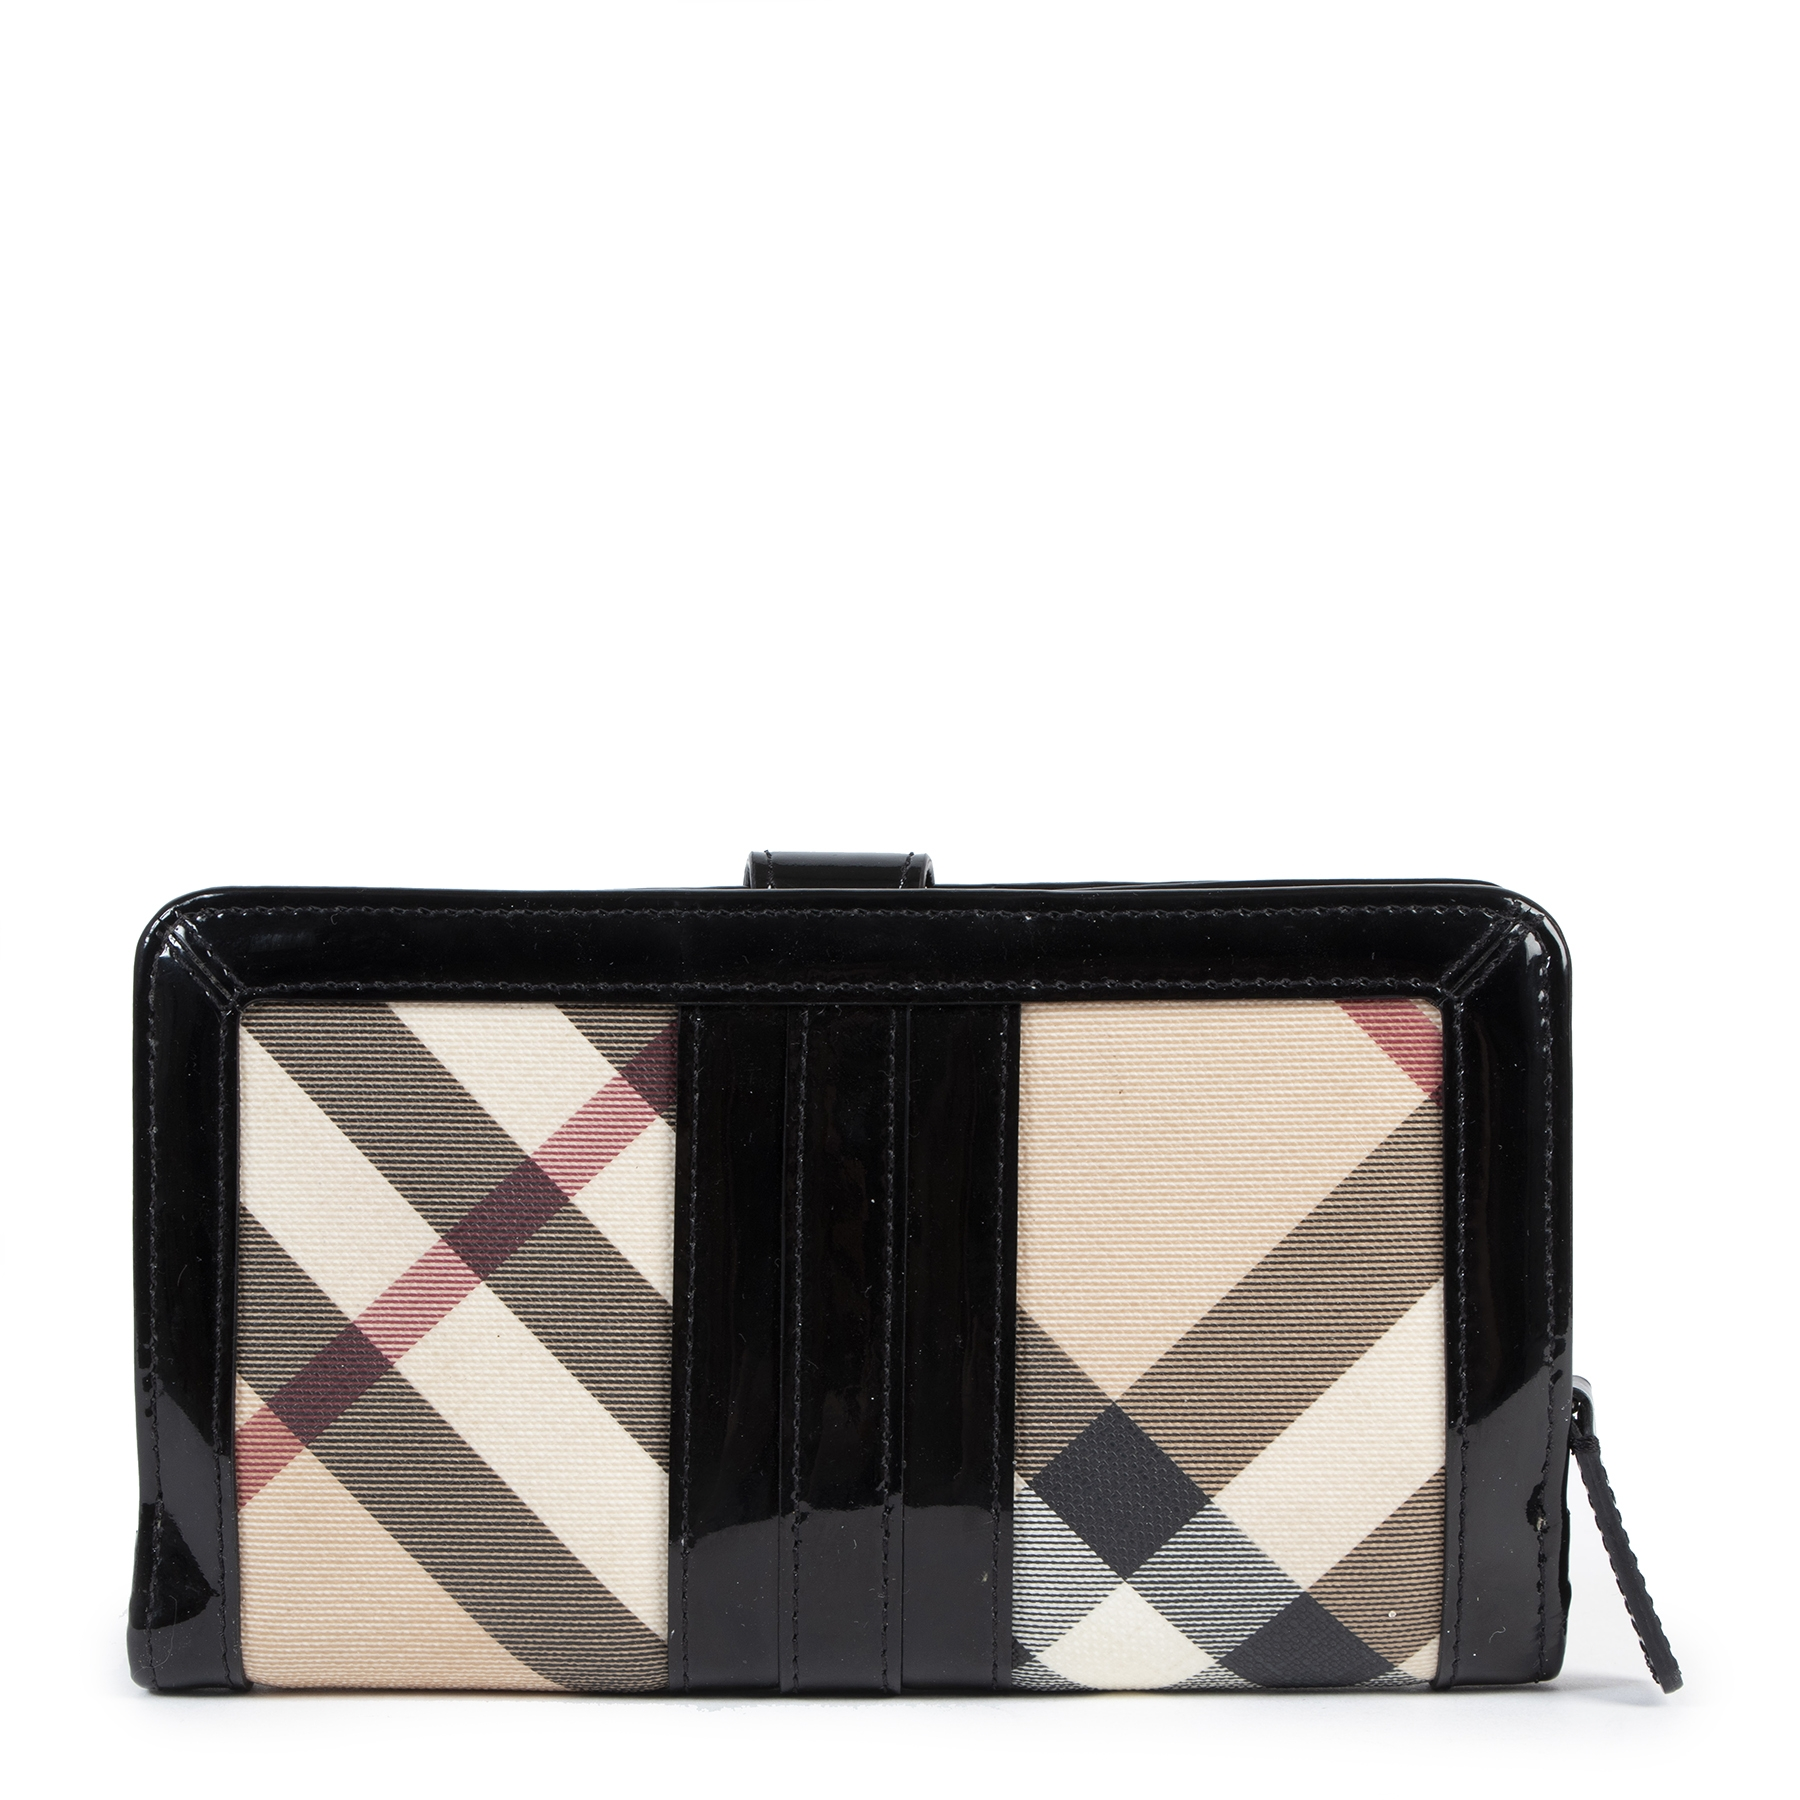 We buy and sell your authentic designer Burberry Beige Nova Check Patent Leather Wallet